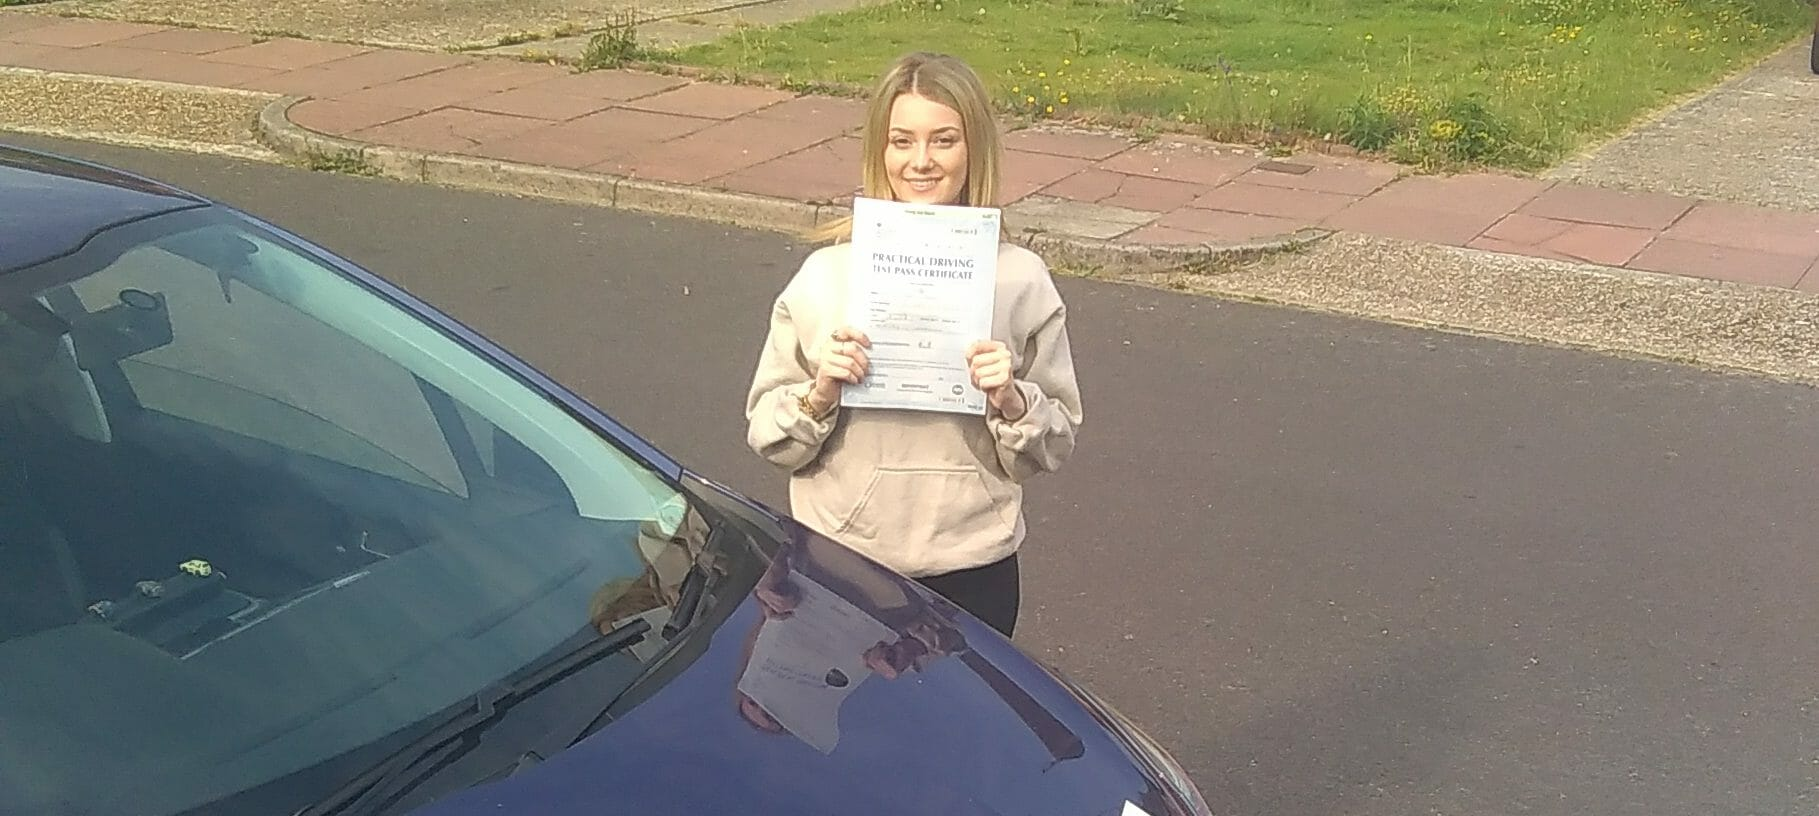 Zero Faults !! Congratulations to Holly Wigmore of Worthing